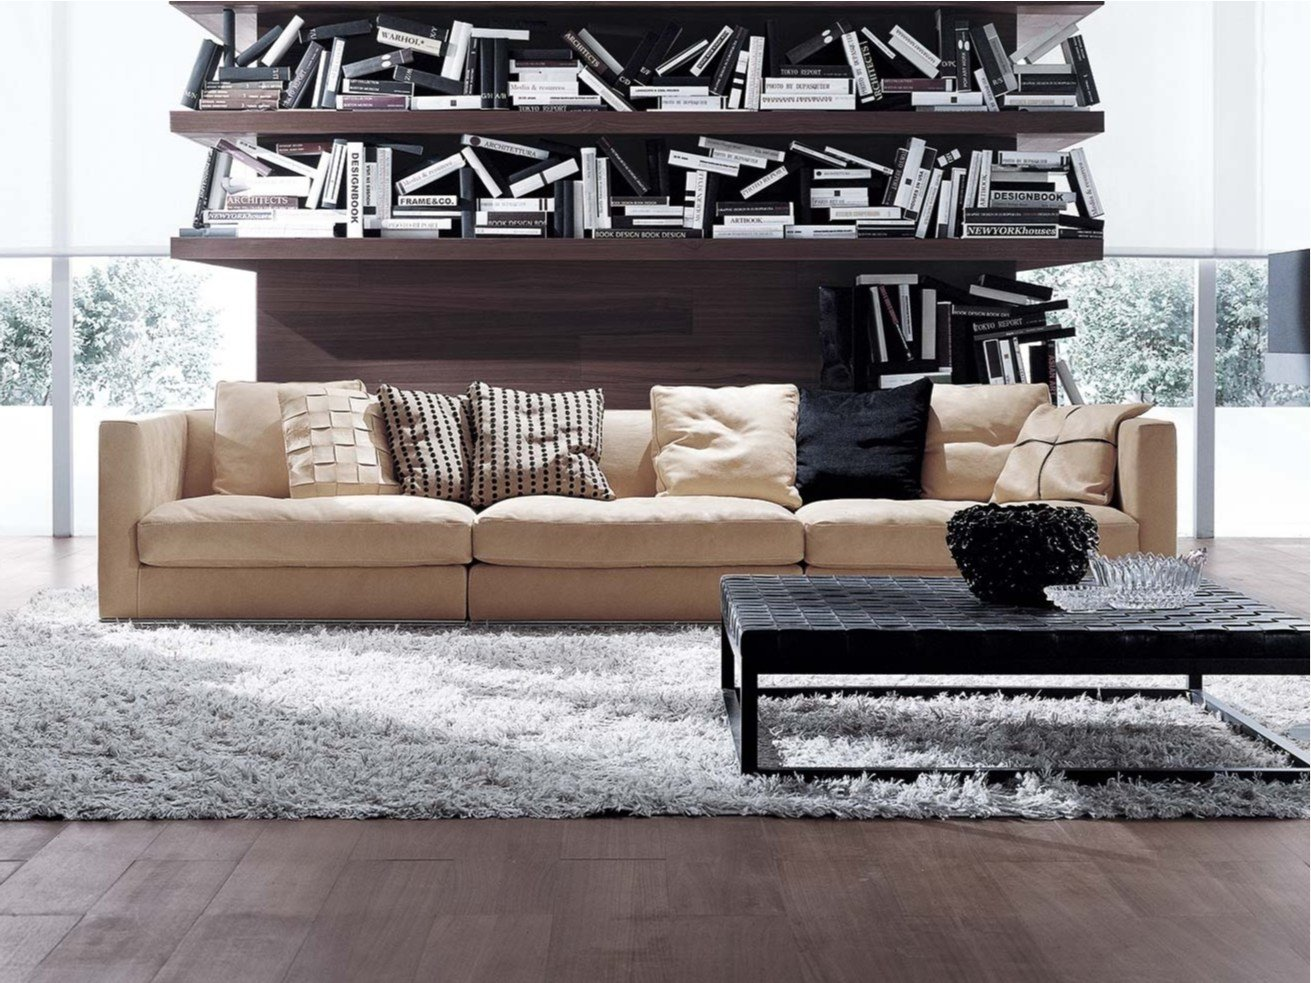 Bilbao fabric sofa by frigerio poltrone e divani - Poltrone e sofa paris ...